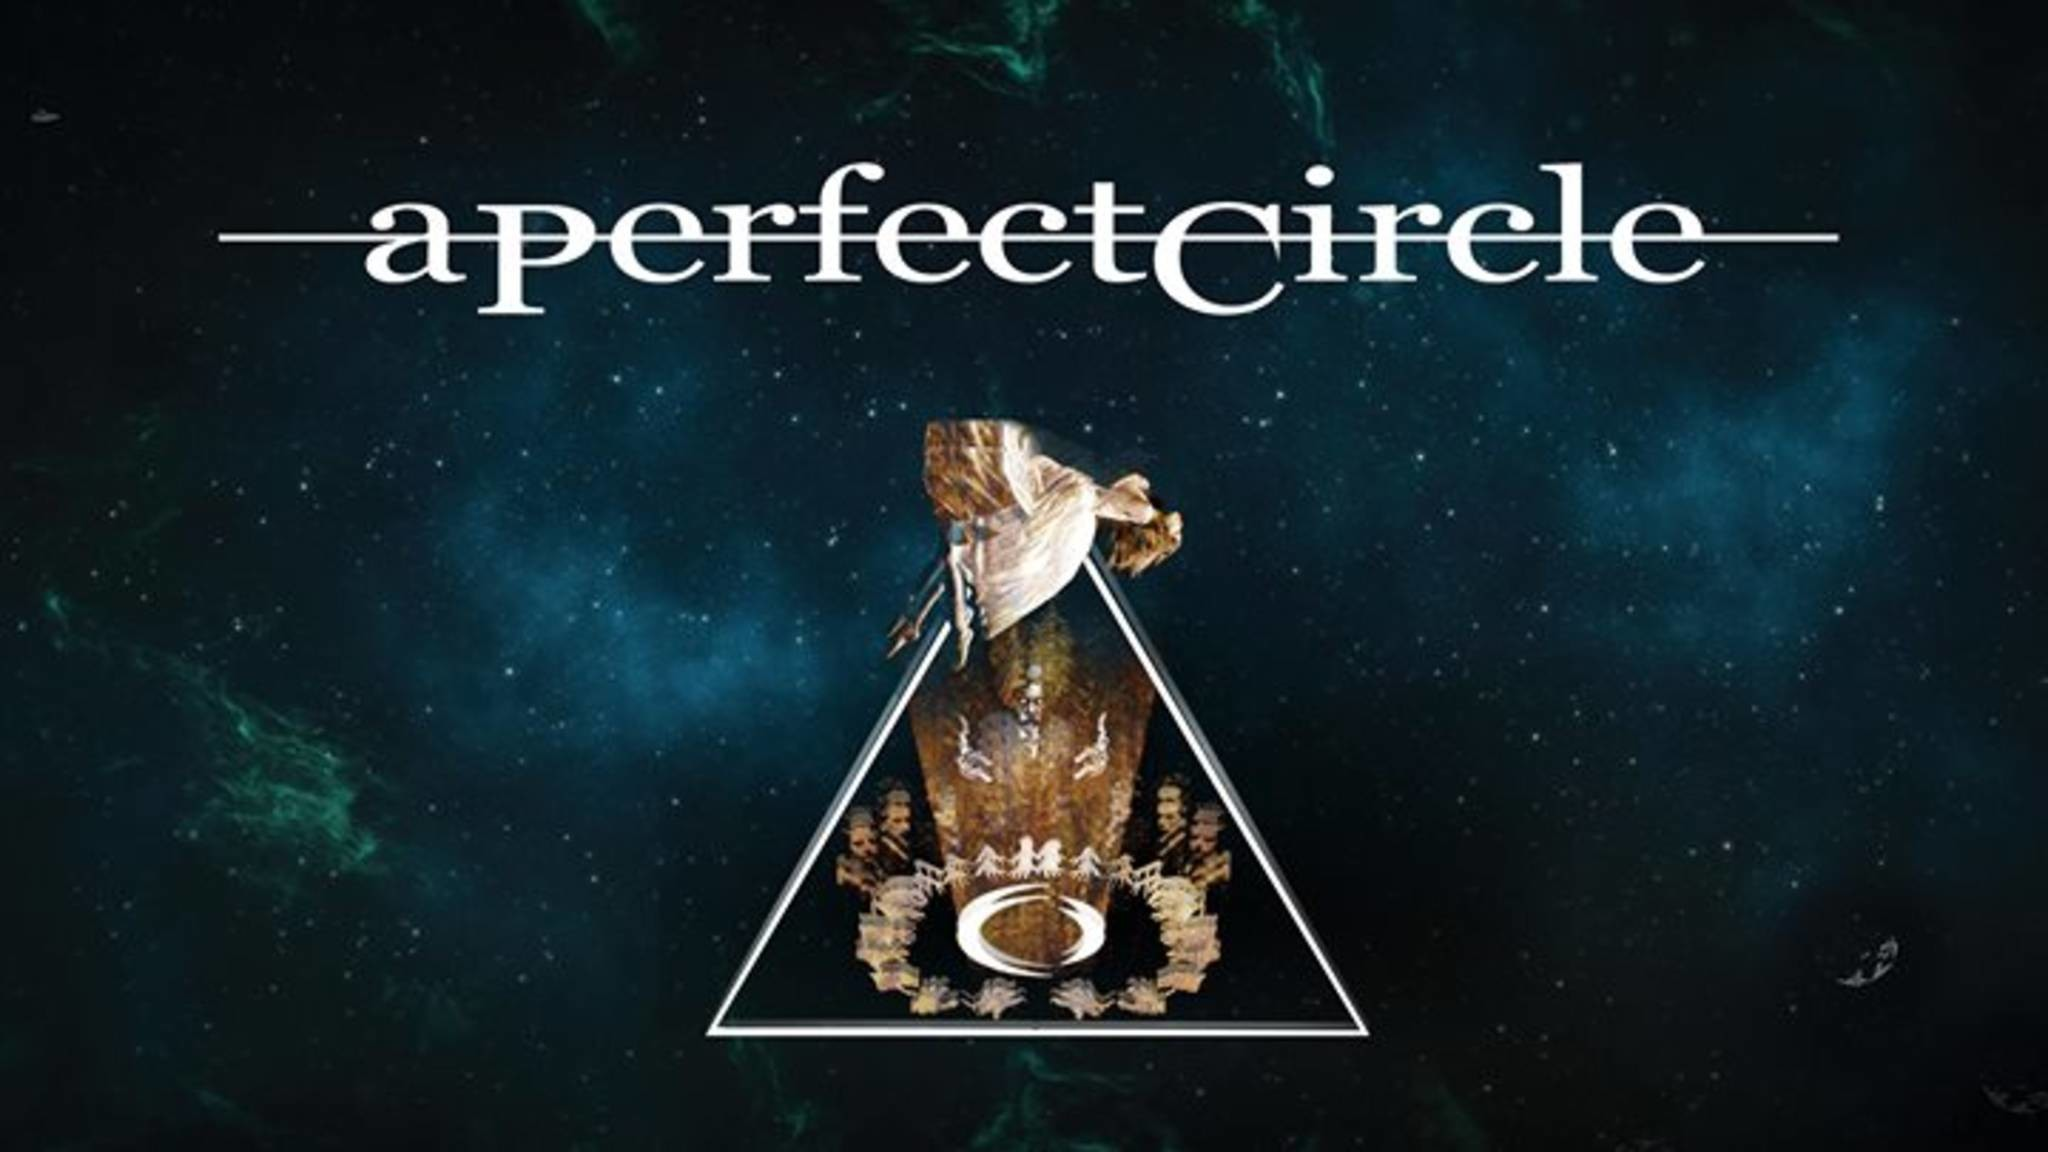 A Perfect Circle - Blue MP3 Download and Lyrics